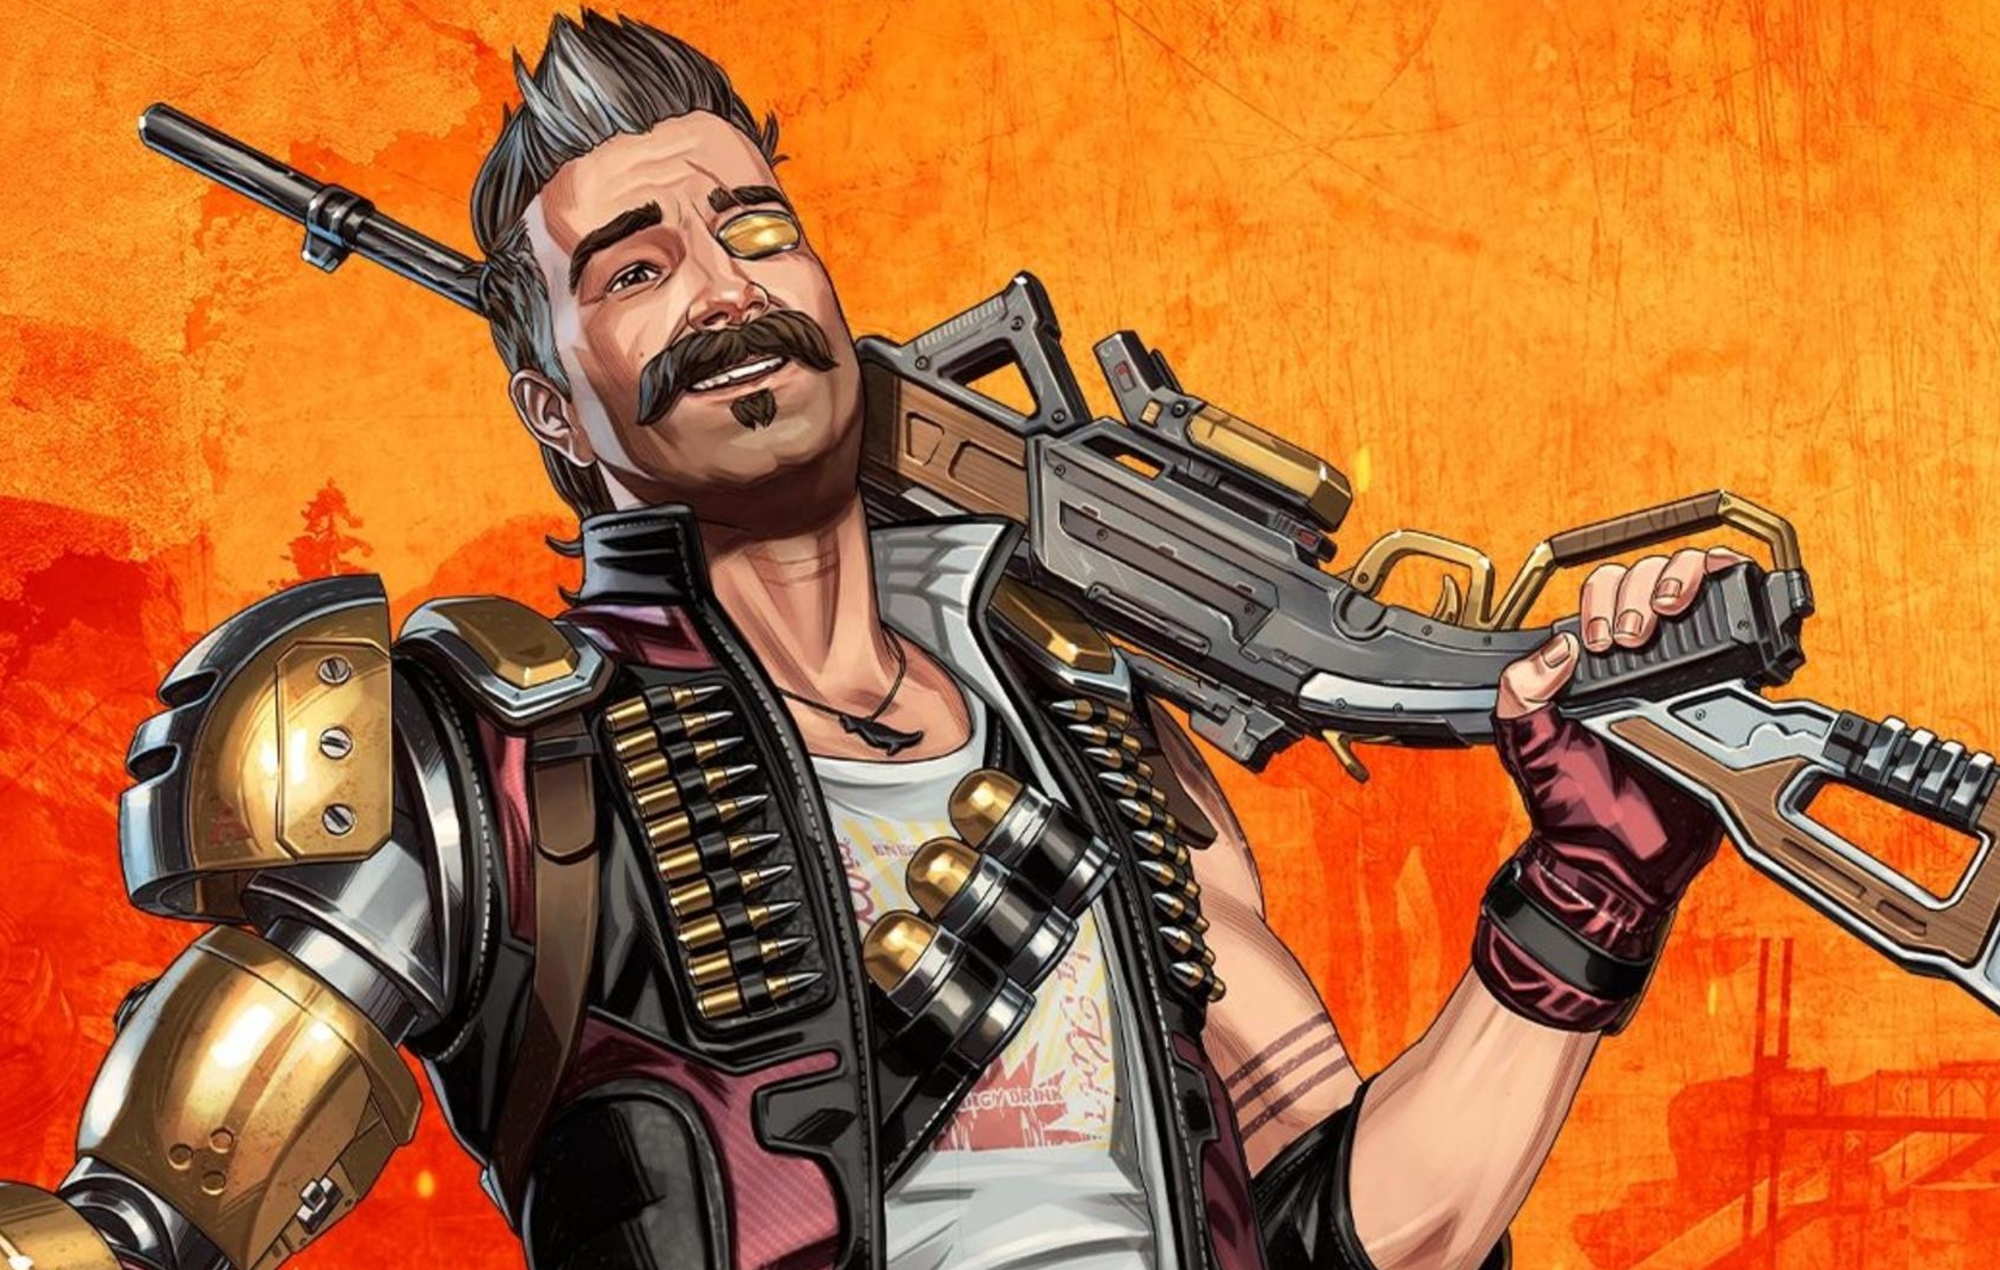 Fuse Trailer Gives The First Look At The Explosive New Character Arriving In Apex Legends Season 8